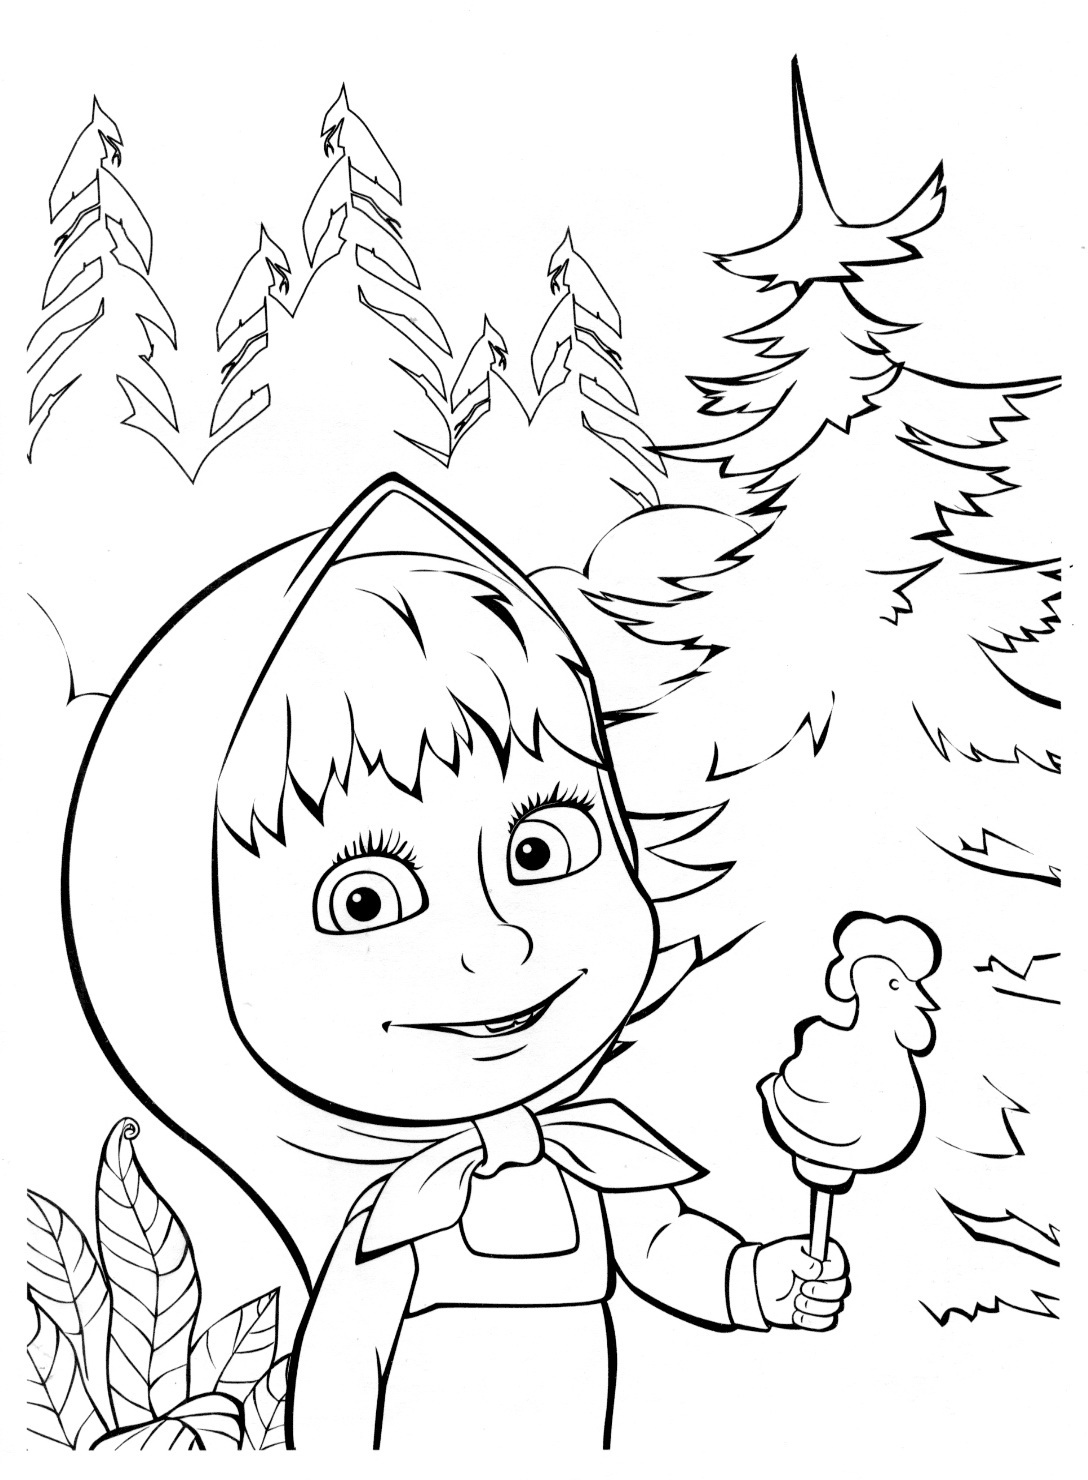 masha i medved coloring pages - photo#9